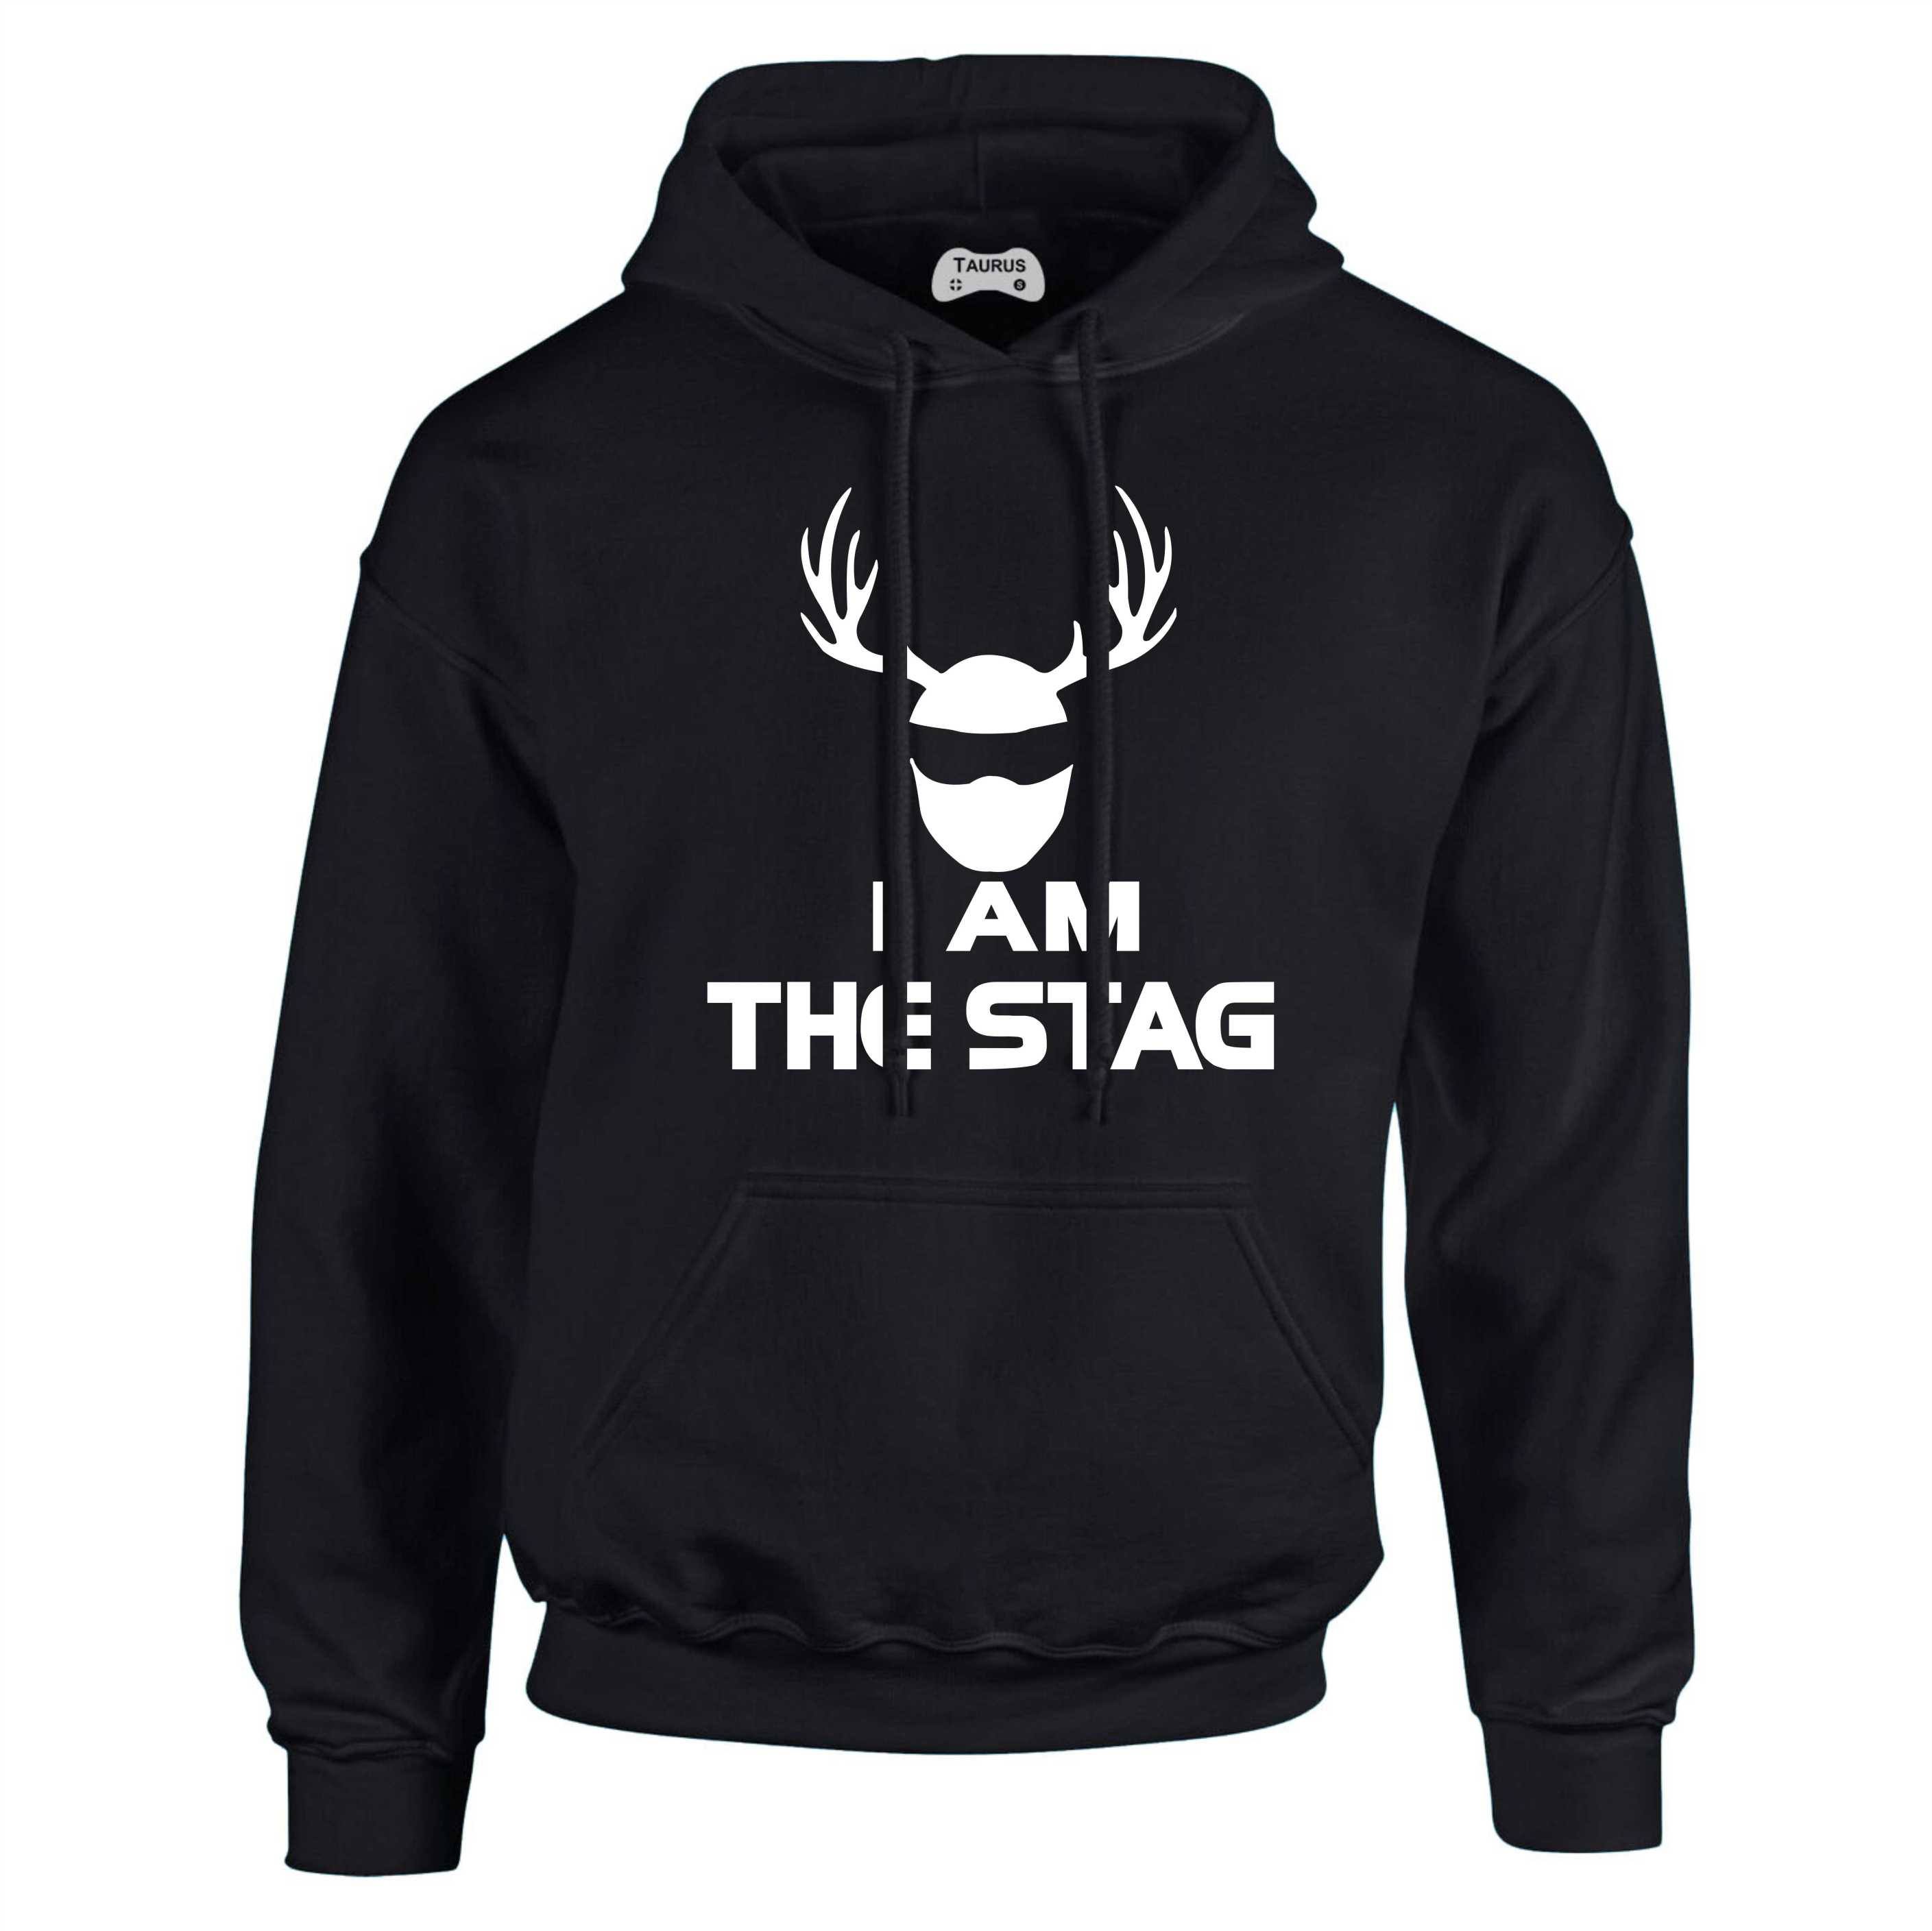 I Am The Stag Hoodie